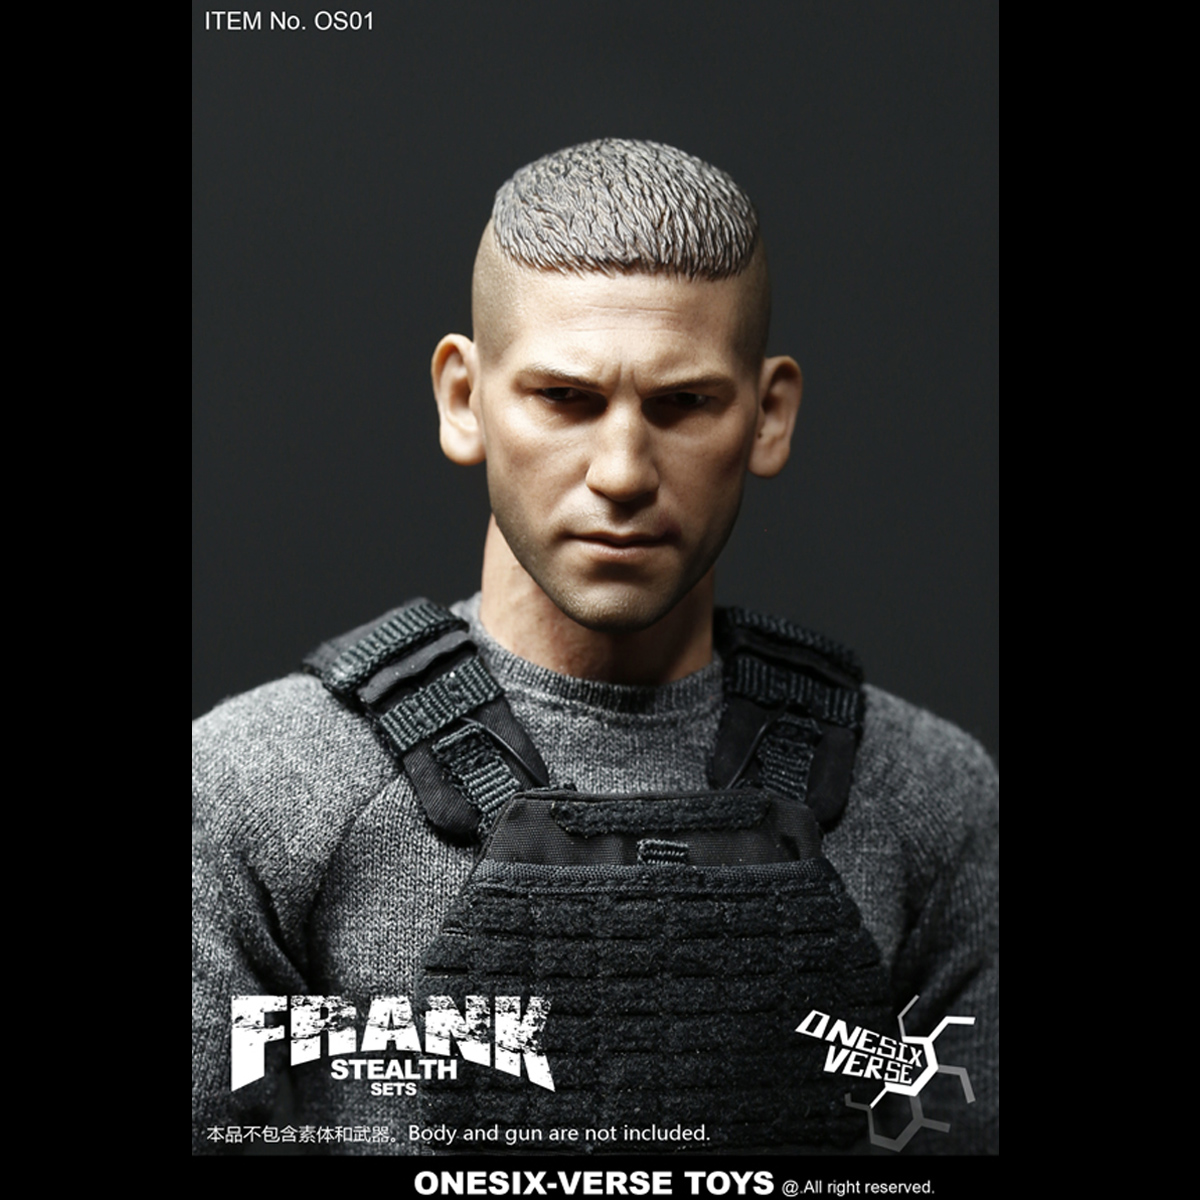 """ONESIX-VERSE TOYS 1//6th OS01 FRANK STEALTH SETS Coat Mode F 12/"""" HT Action Figure"""